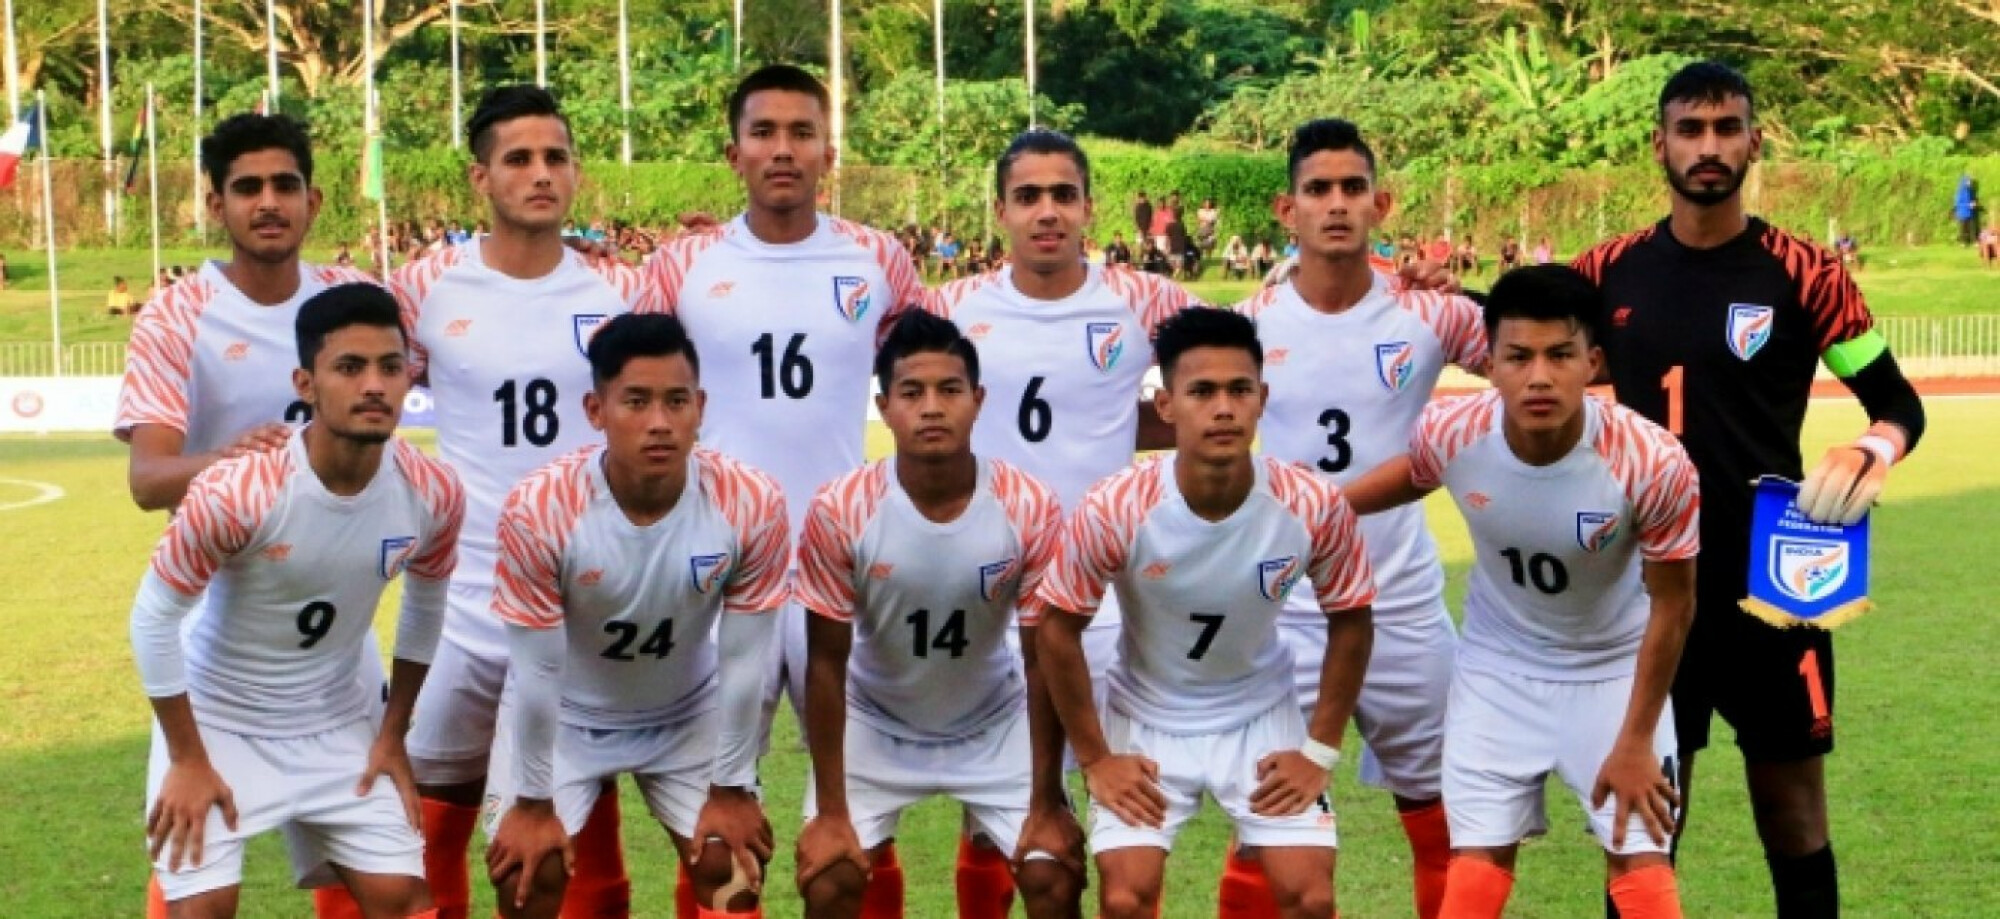 OFC Youth Tournament 2019: India annihilate New Caledonia